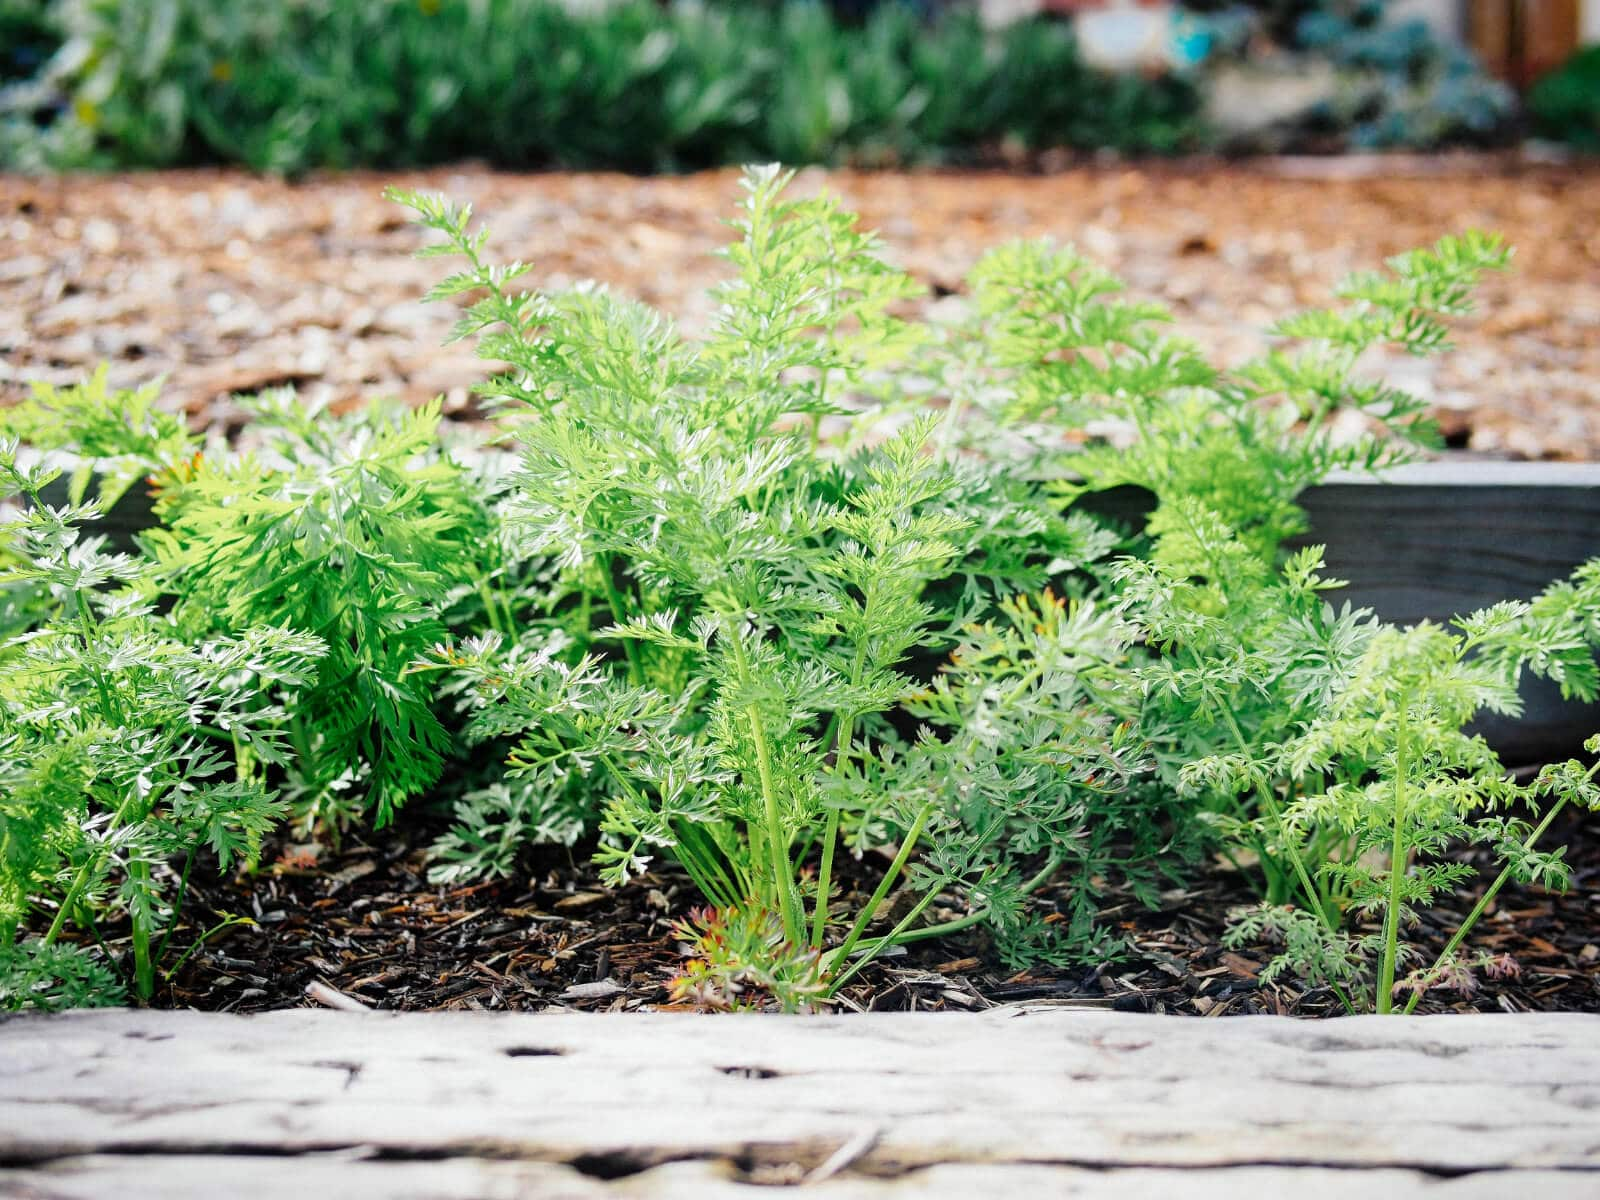 Carrot greens are edible